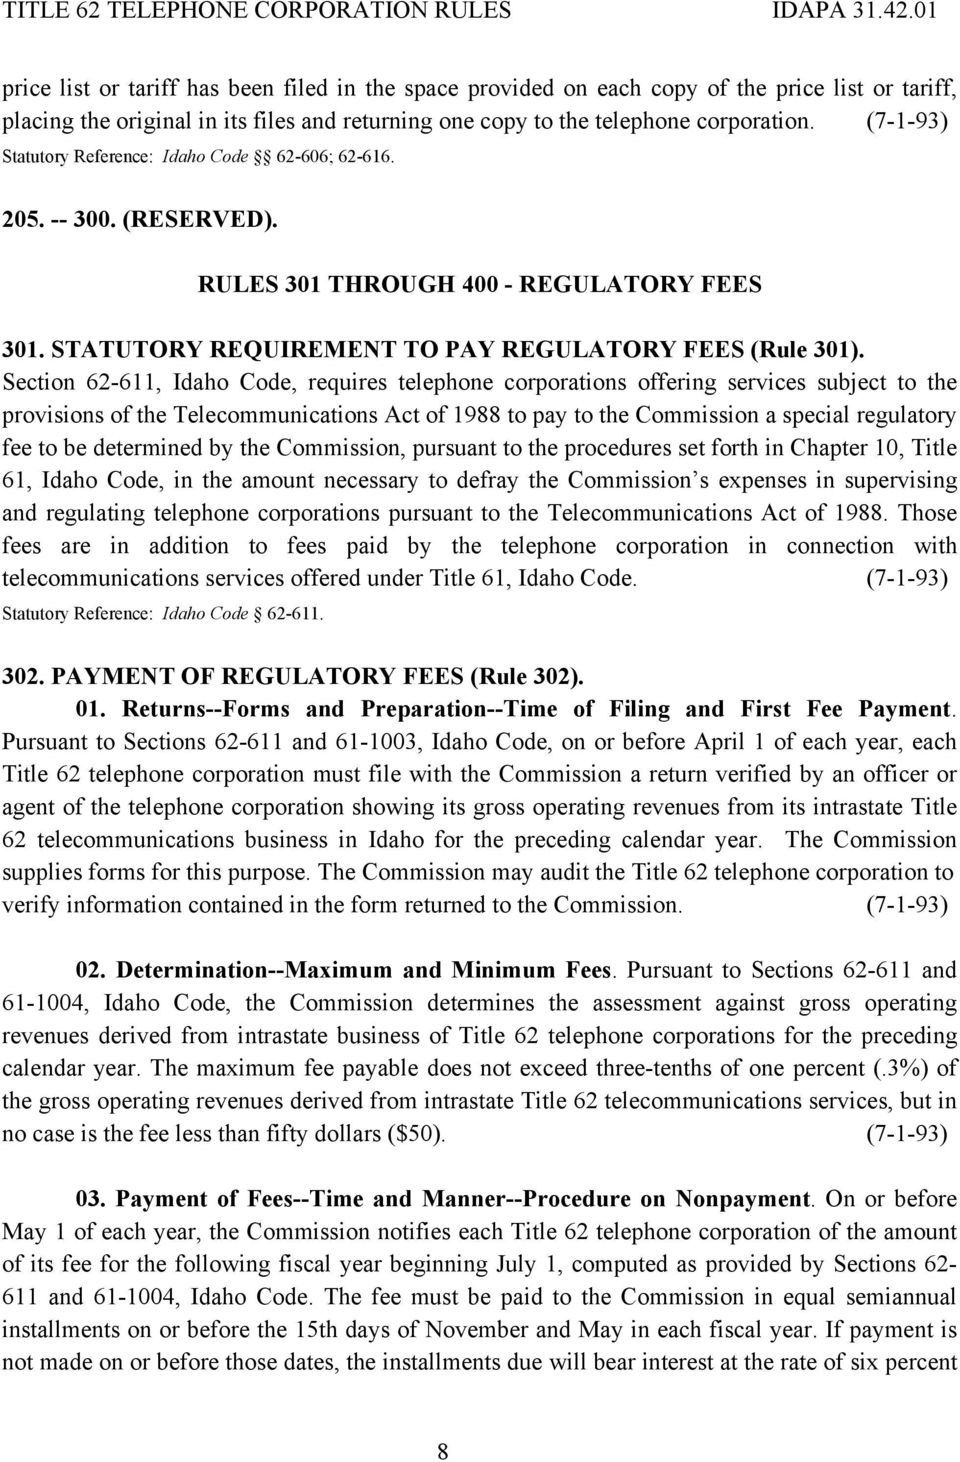 Section 62-611, Idaho Code, requires telephone corporations offering services subject to the provisions of the Telecommunications Act of 1988 to pay to the Commission a special regulatory fee to be